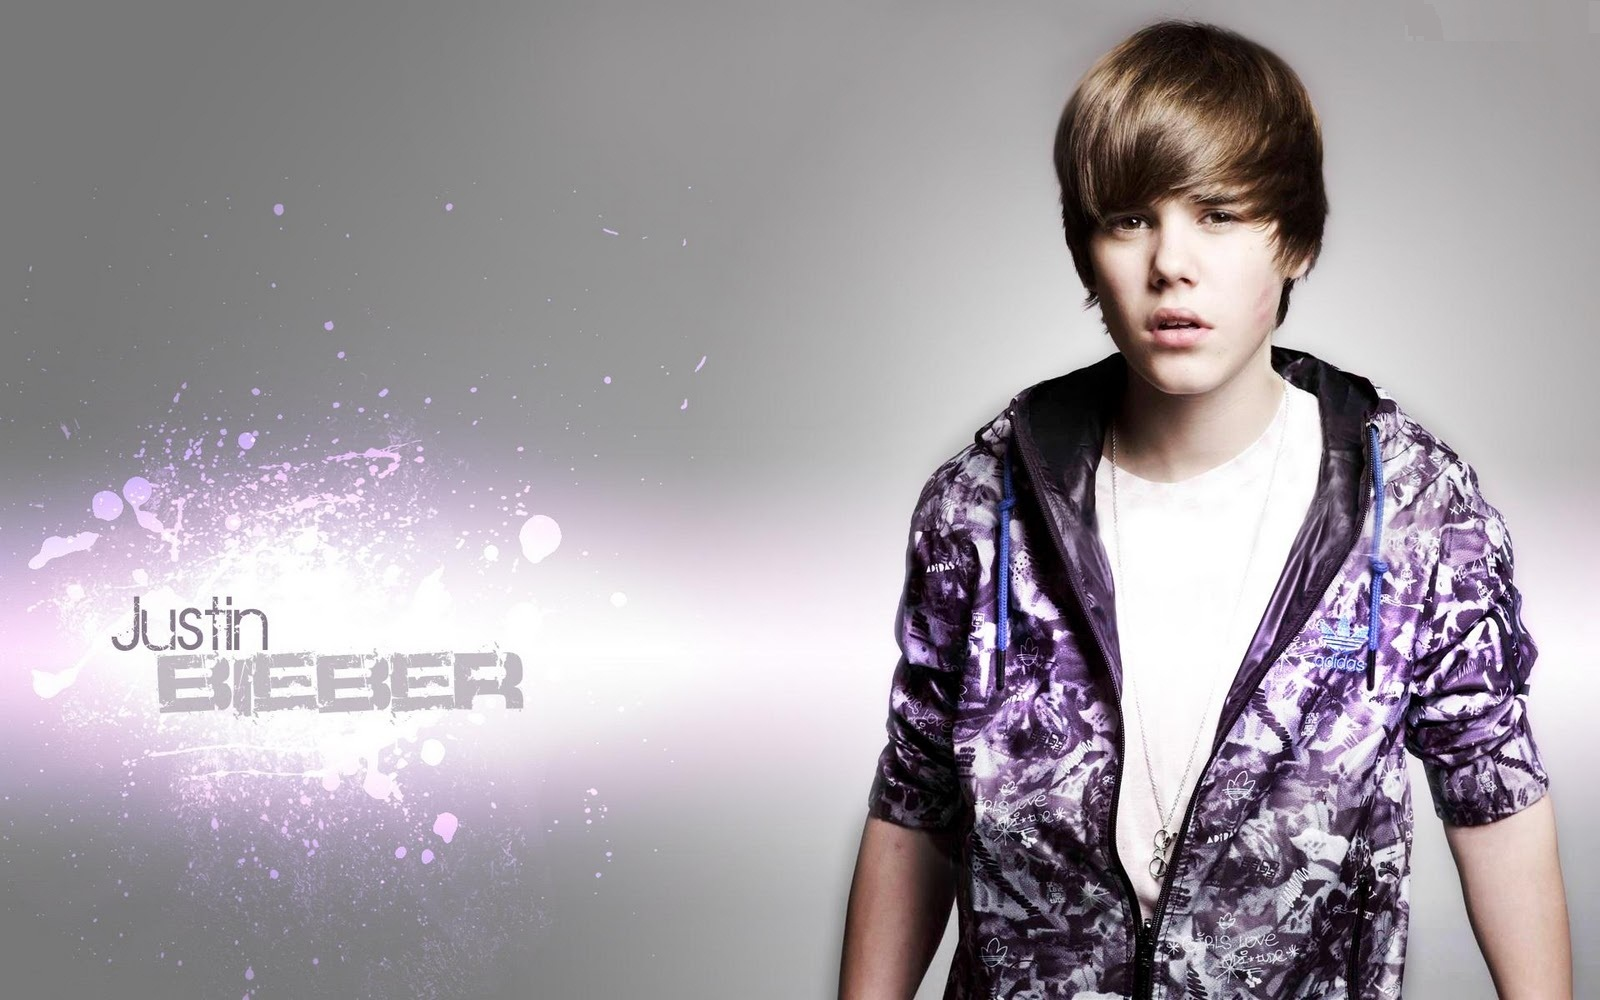 Justin Bieber New HD wallpapers 2012-2013 ~ All About HD Wallpapers